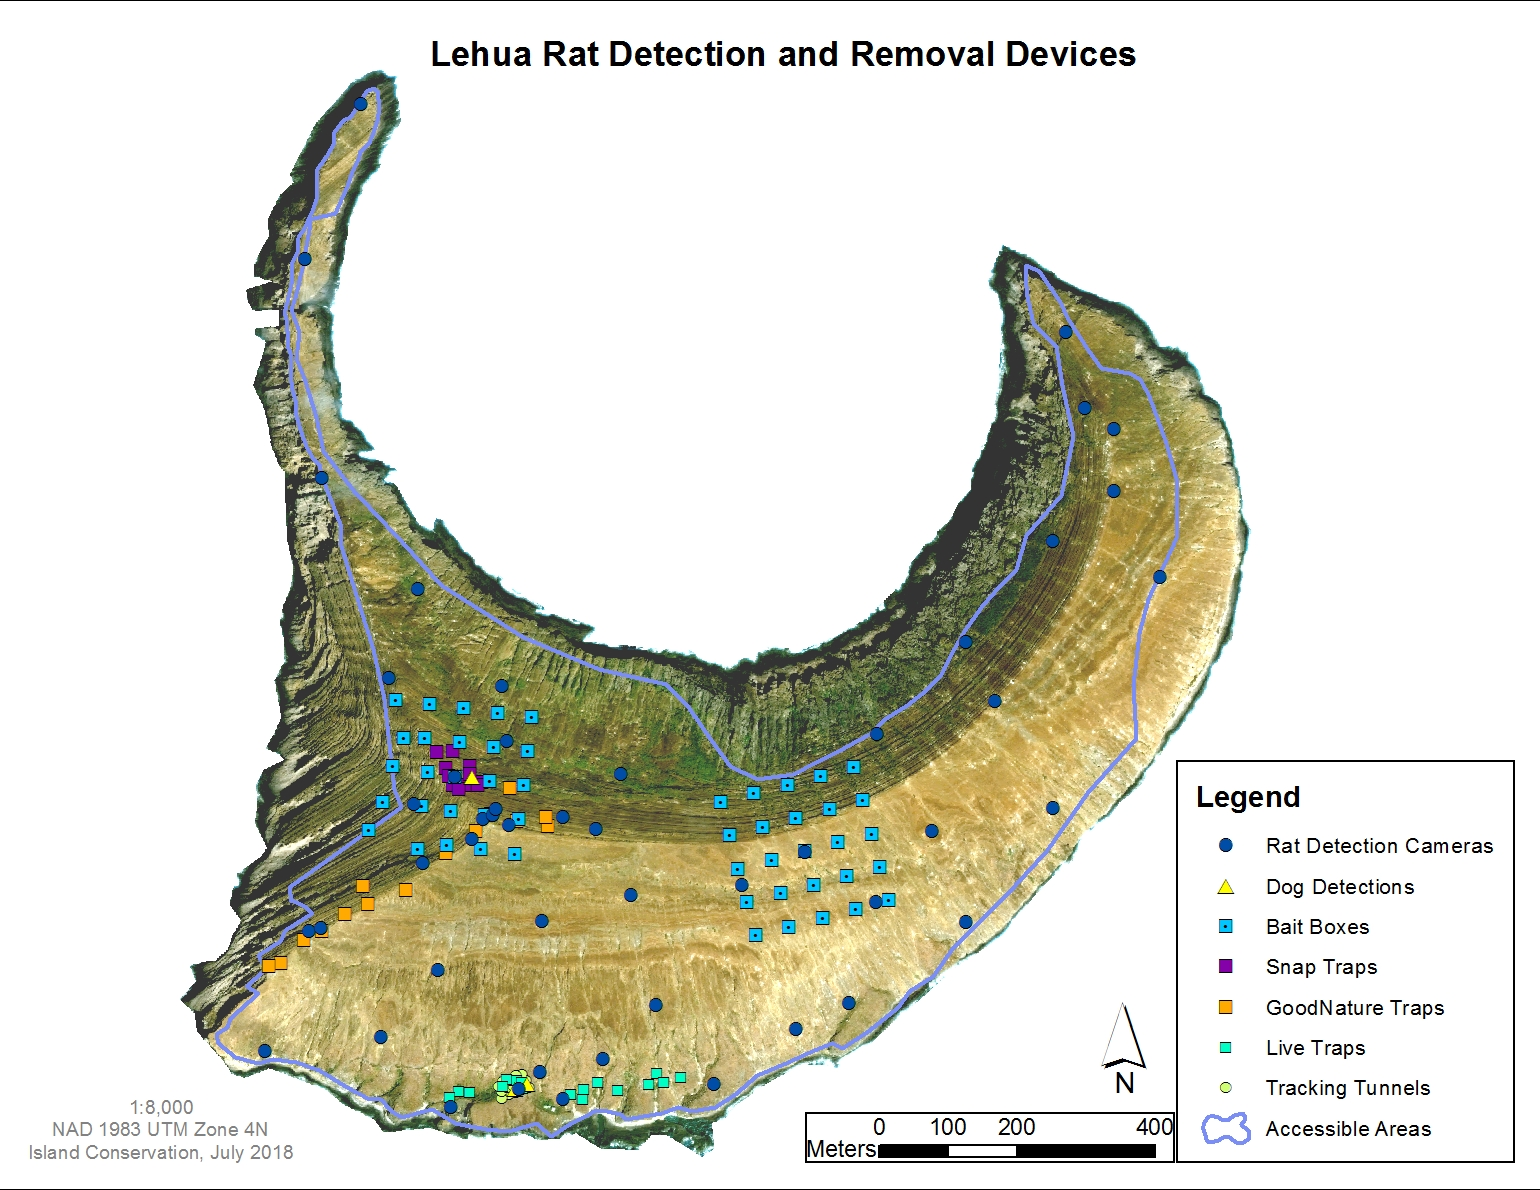 Map of Lehua